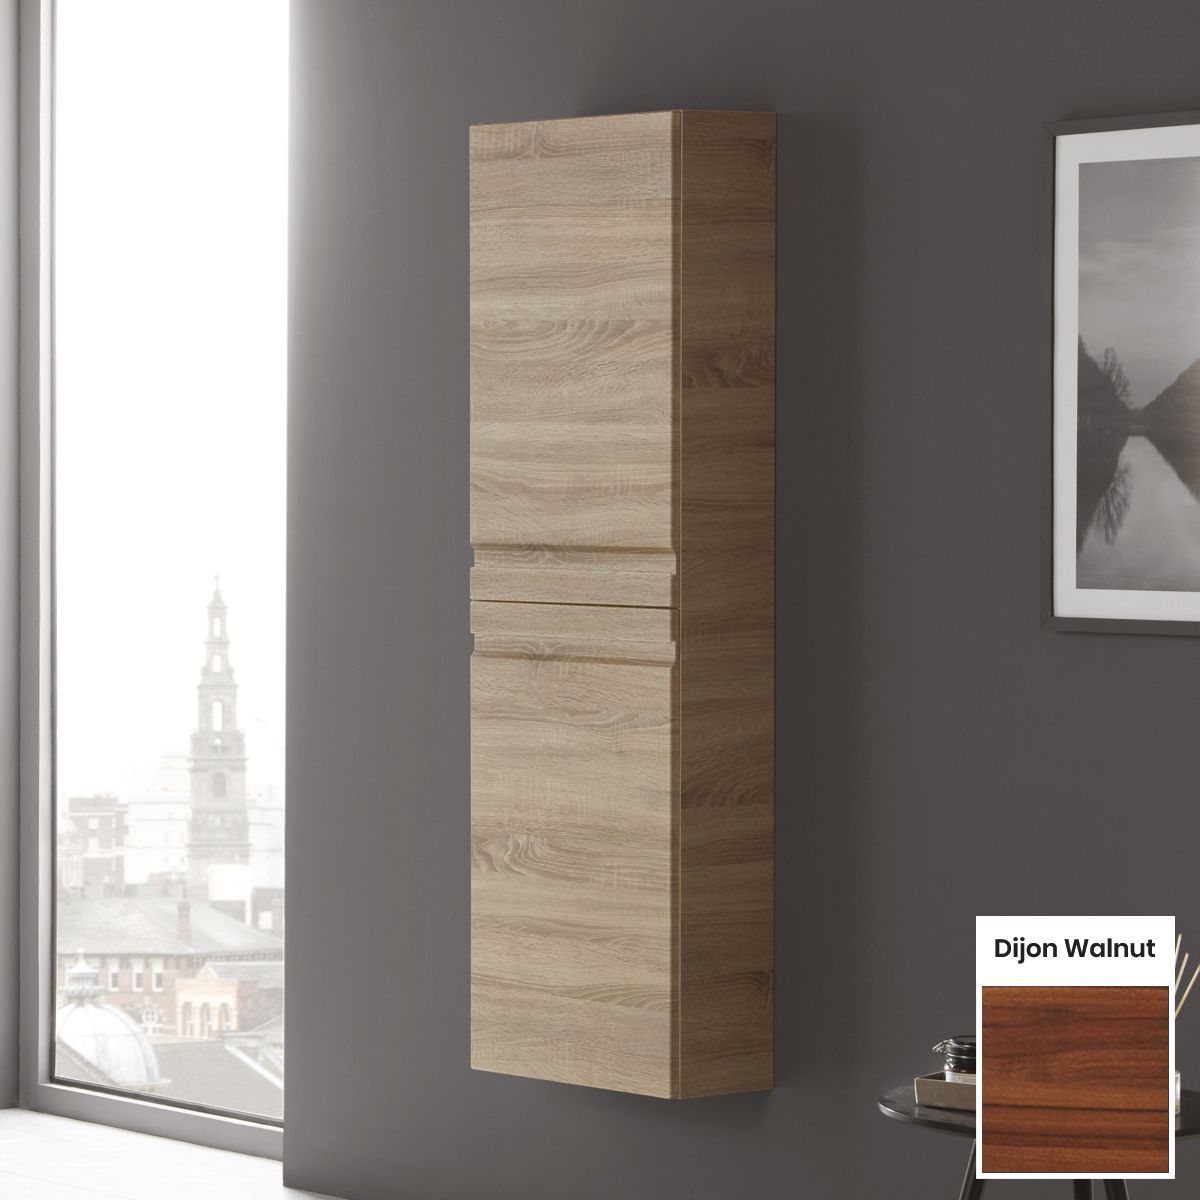 Elation Eko Dijon Walnut Tall Unit with Slab Door 1500mm